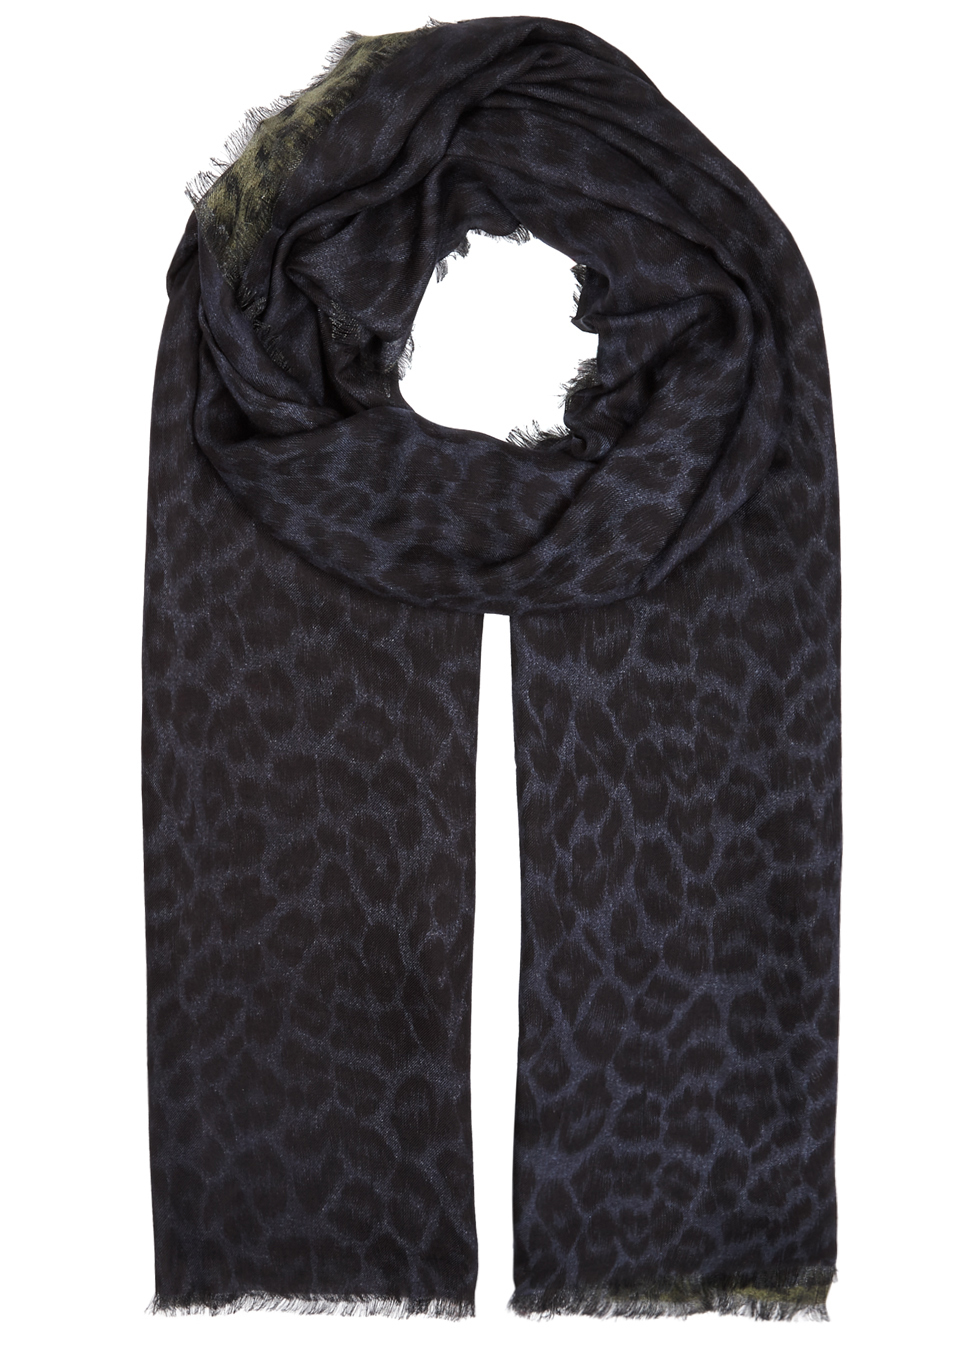 Florence Navy And Green Leopard Print Scarf - predominant colour: navy; occasions: casual; type of pattern: heavy; style: regular; size: standard; material: fabric; pattern: animal print; season: a/w 2016; wardrobe: highlight